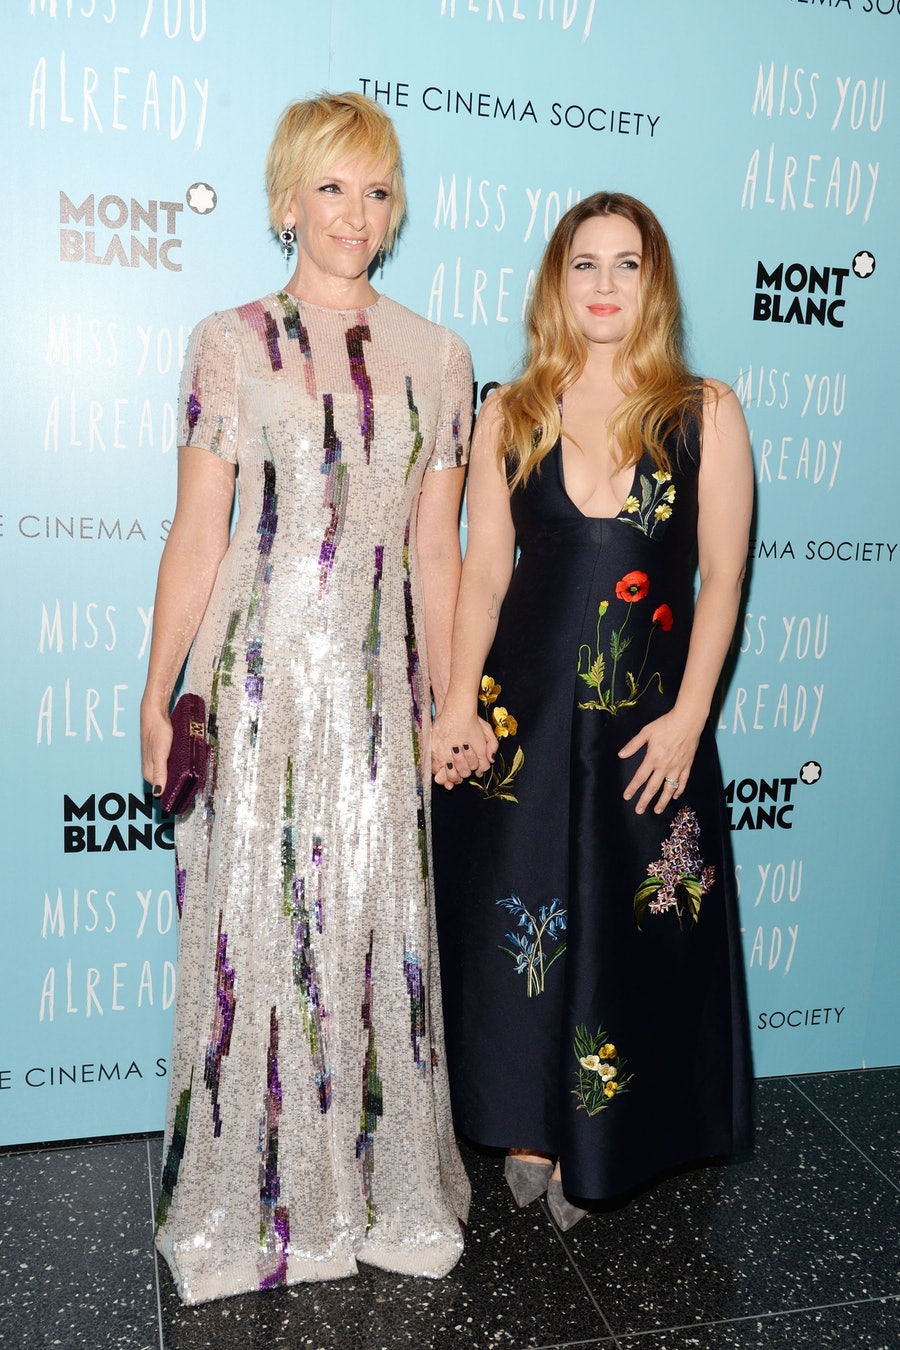 Toni Collette and Drew Barrymore